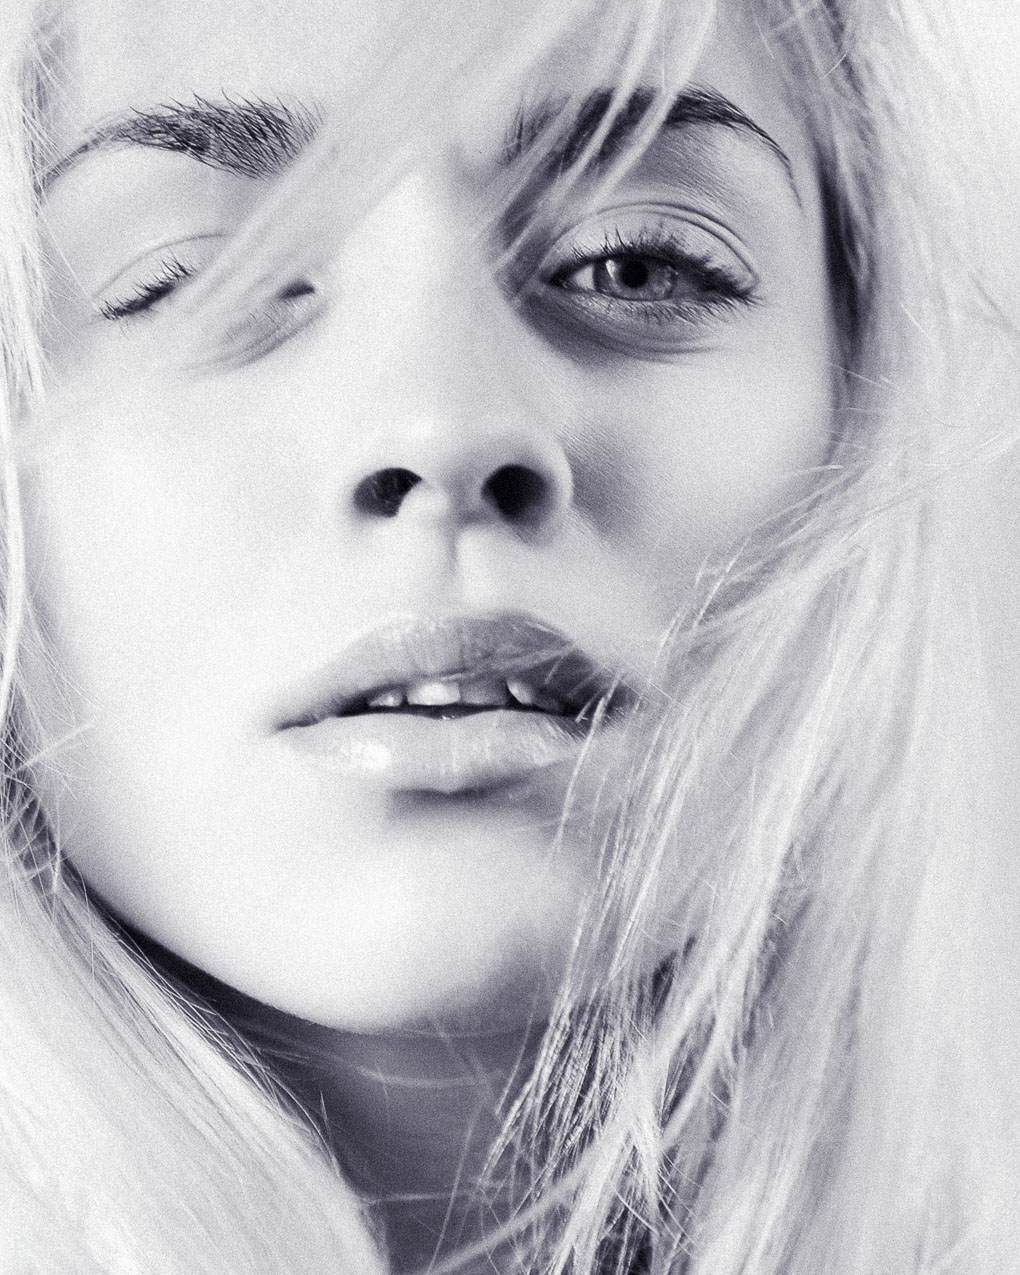 Fotos Johanna Thuresson nudes (77 foto and video), Topless, Paparazzi, Twitter, braless 2020